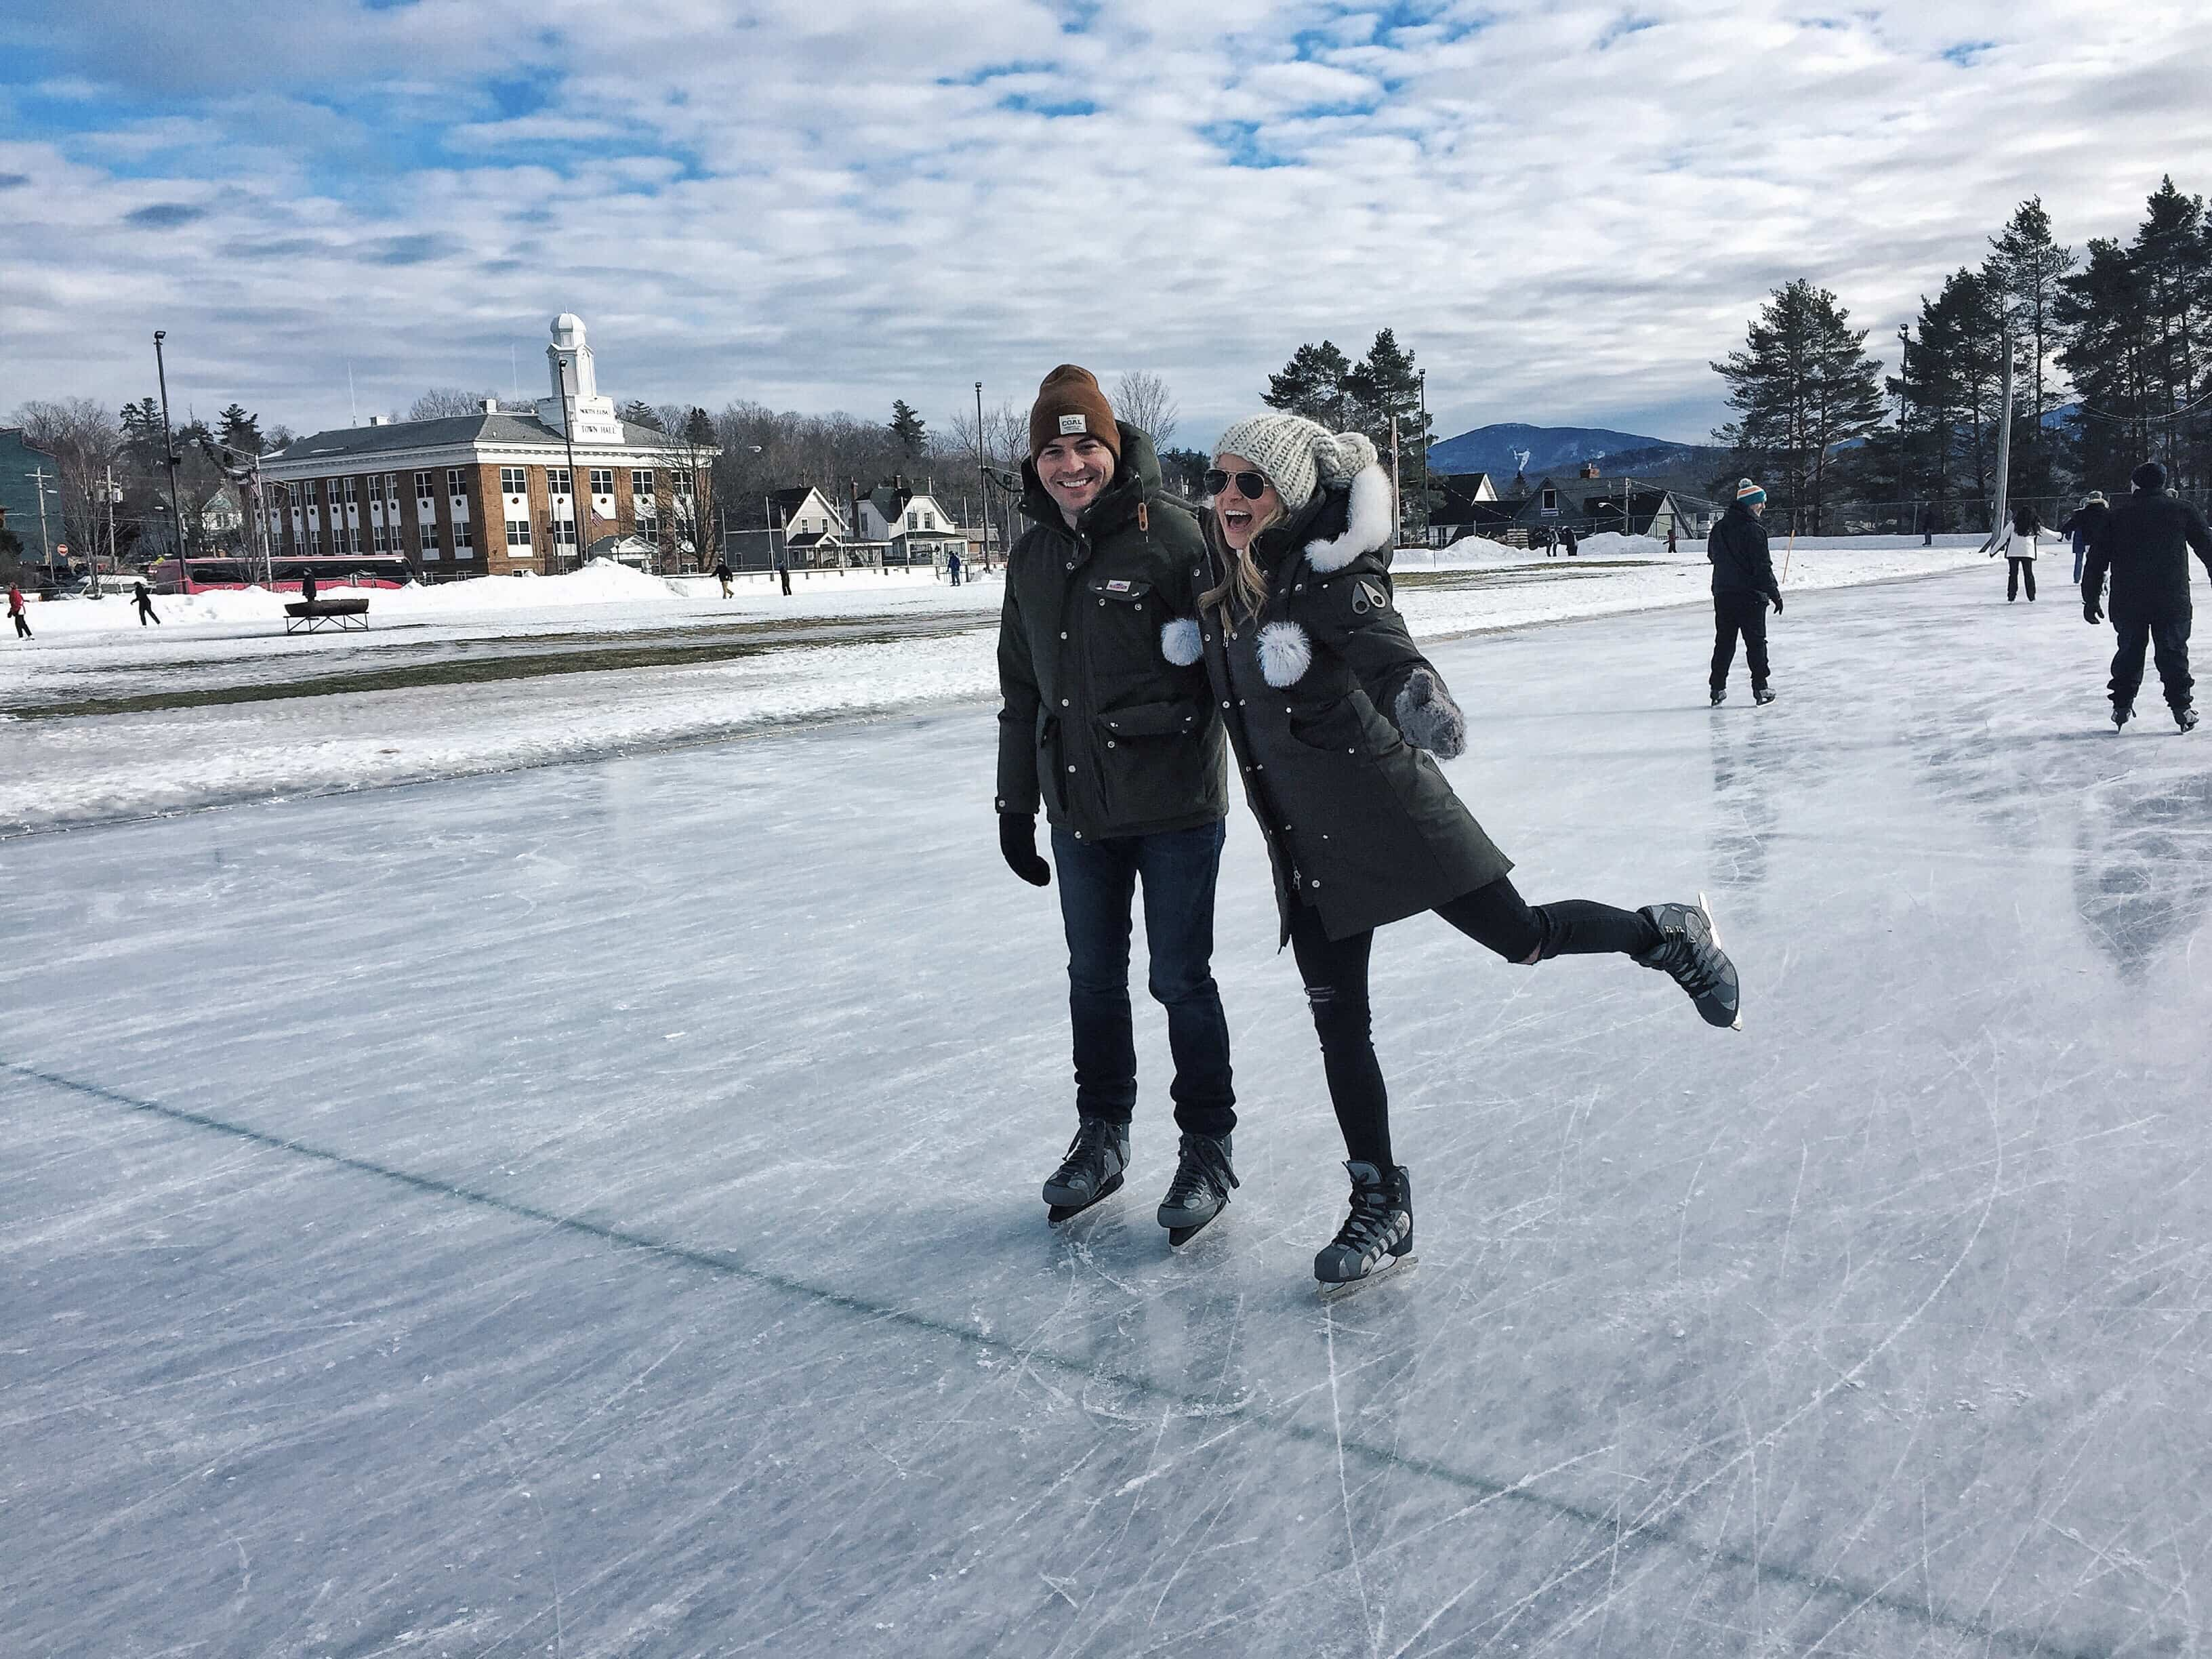 lake placid winter activities